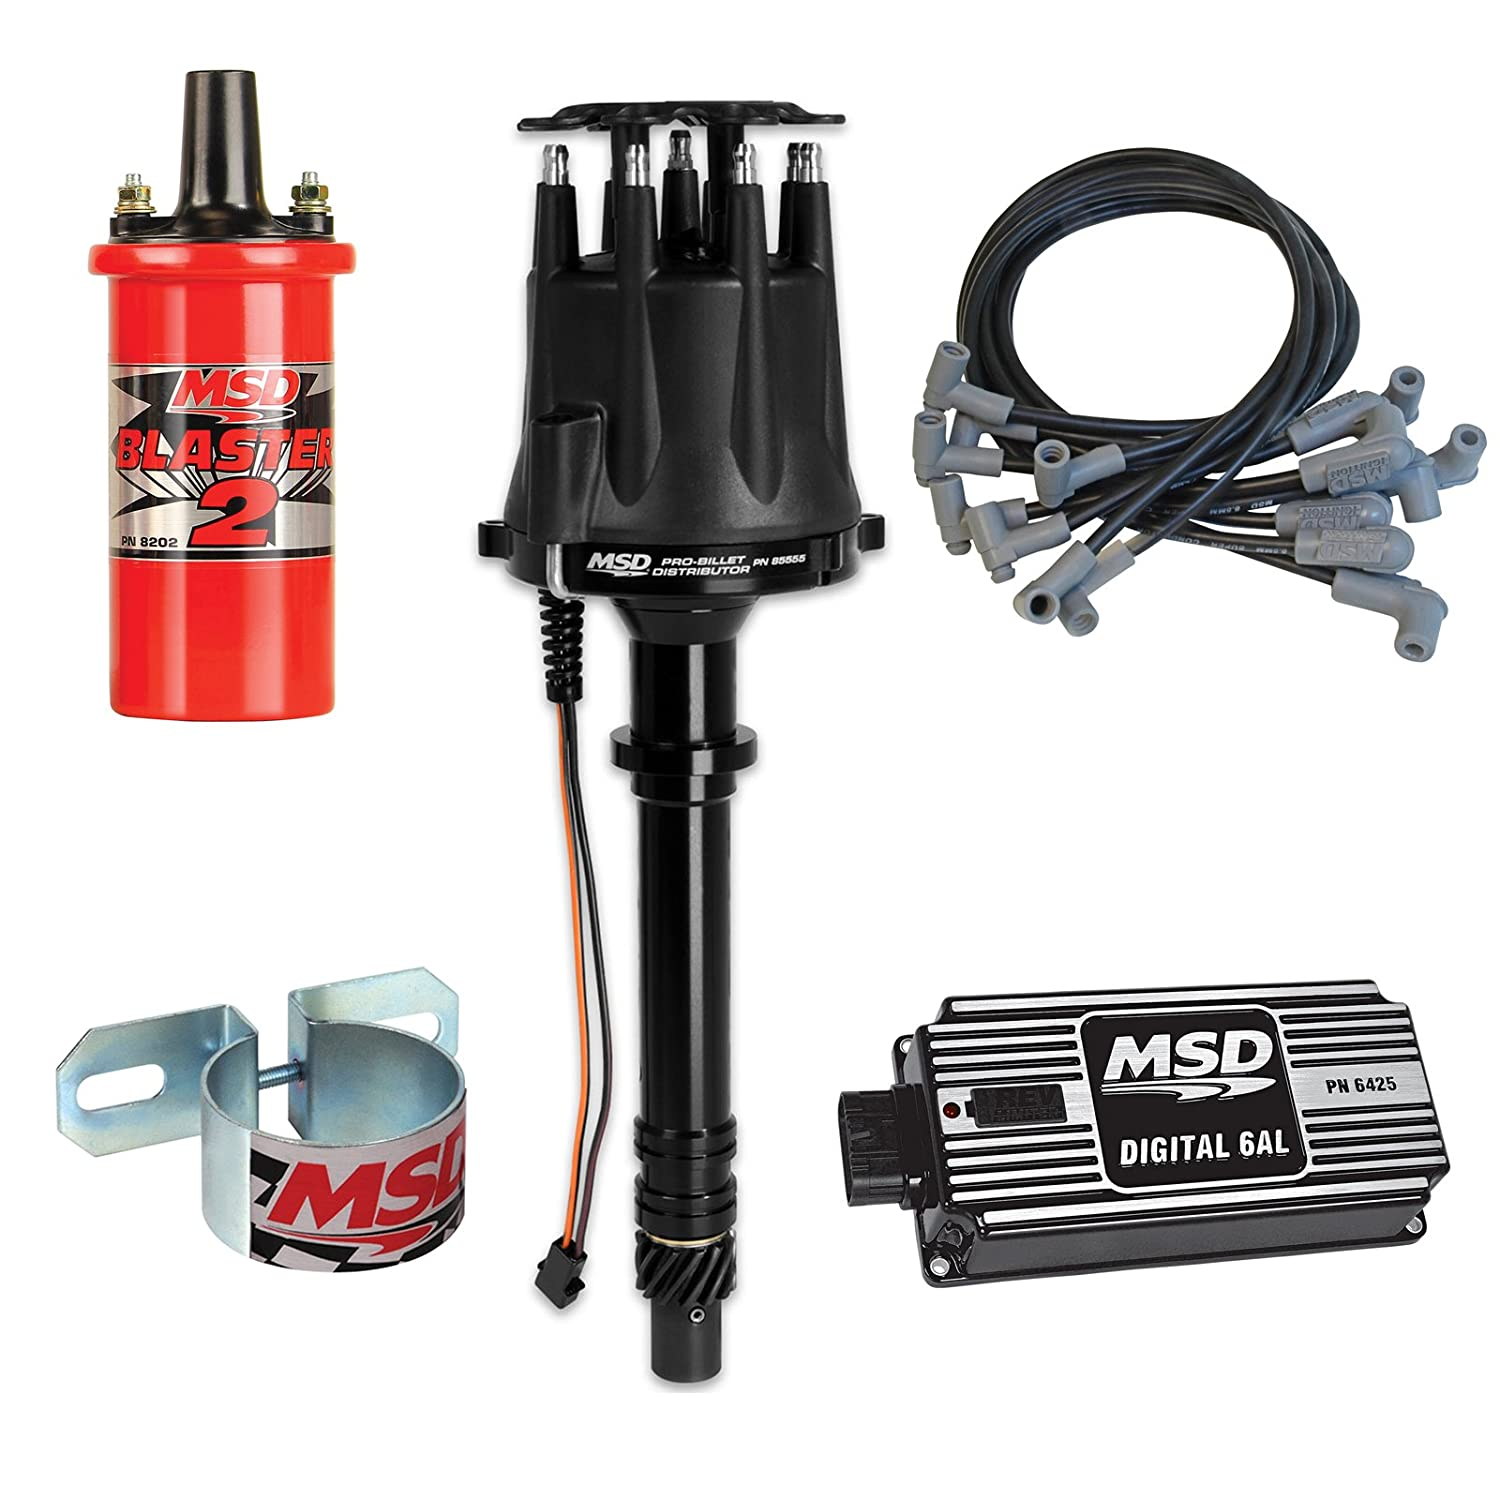 Msd Complete Ignition Kit Chevy Sbc Digital 6al Distributor With Wiring Wires Coil Bracket Automotive